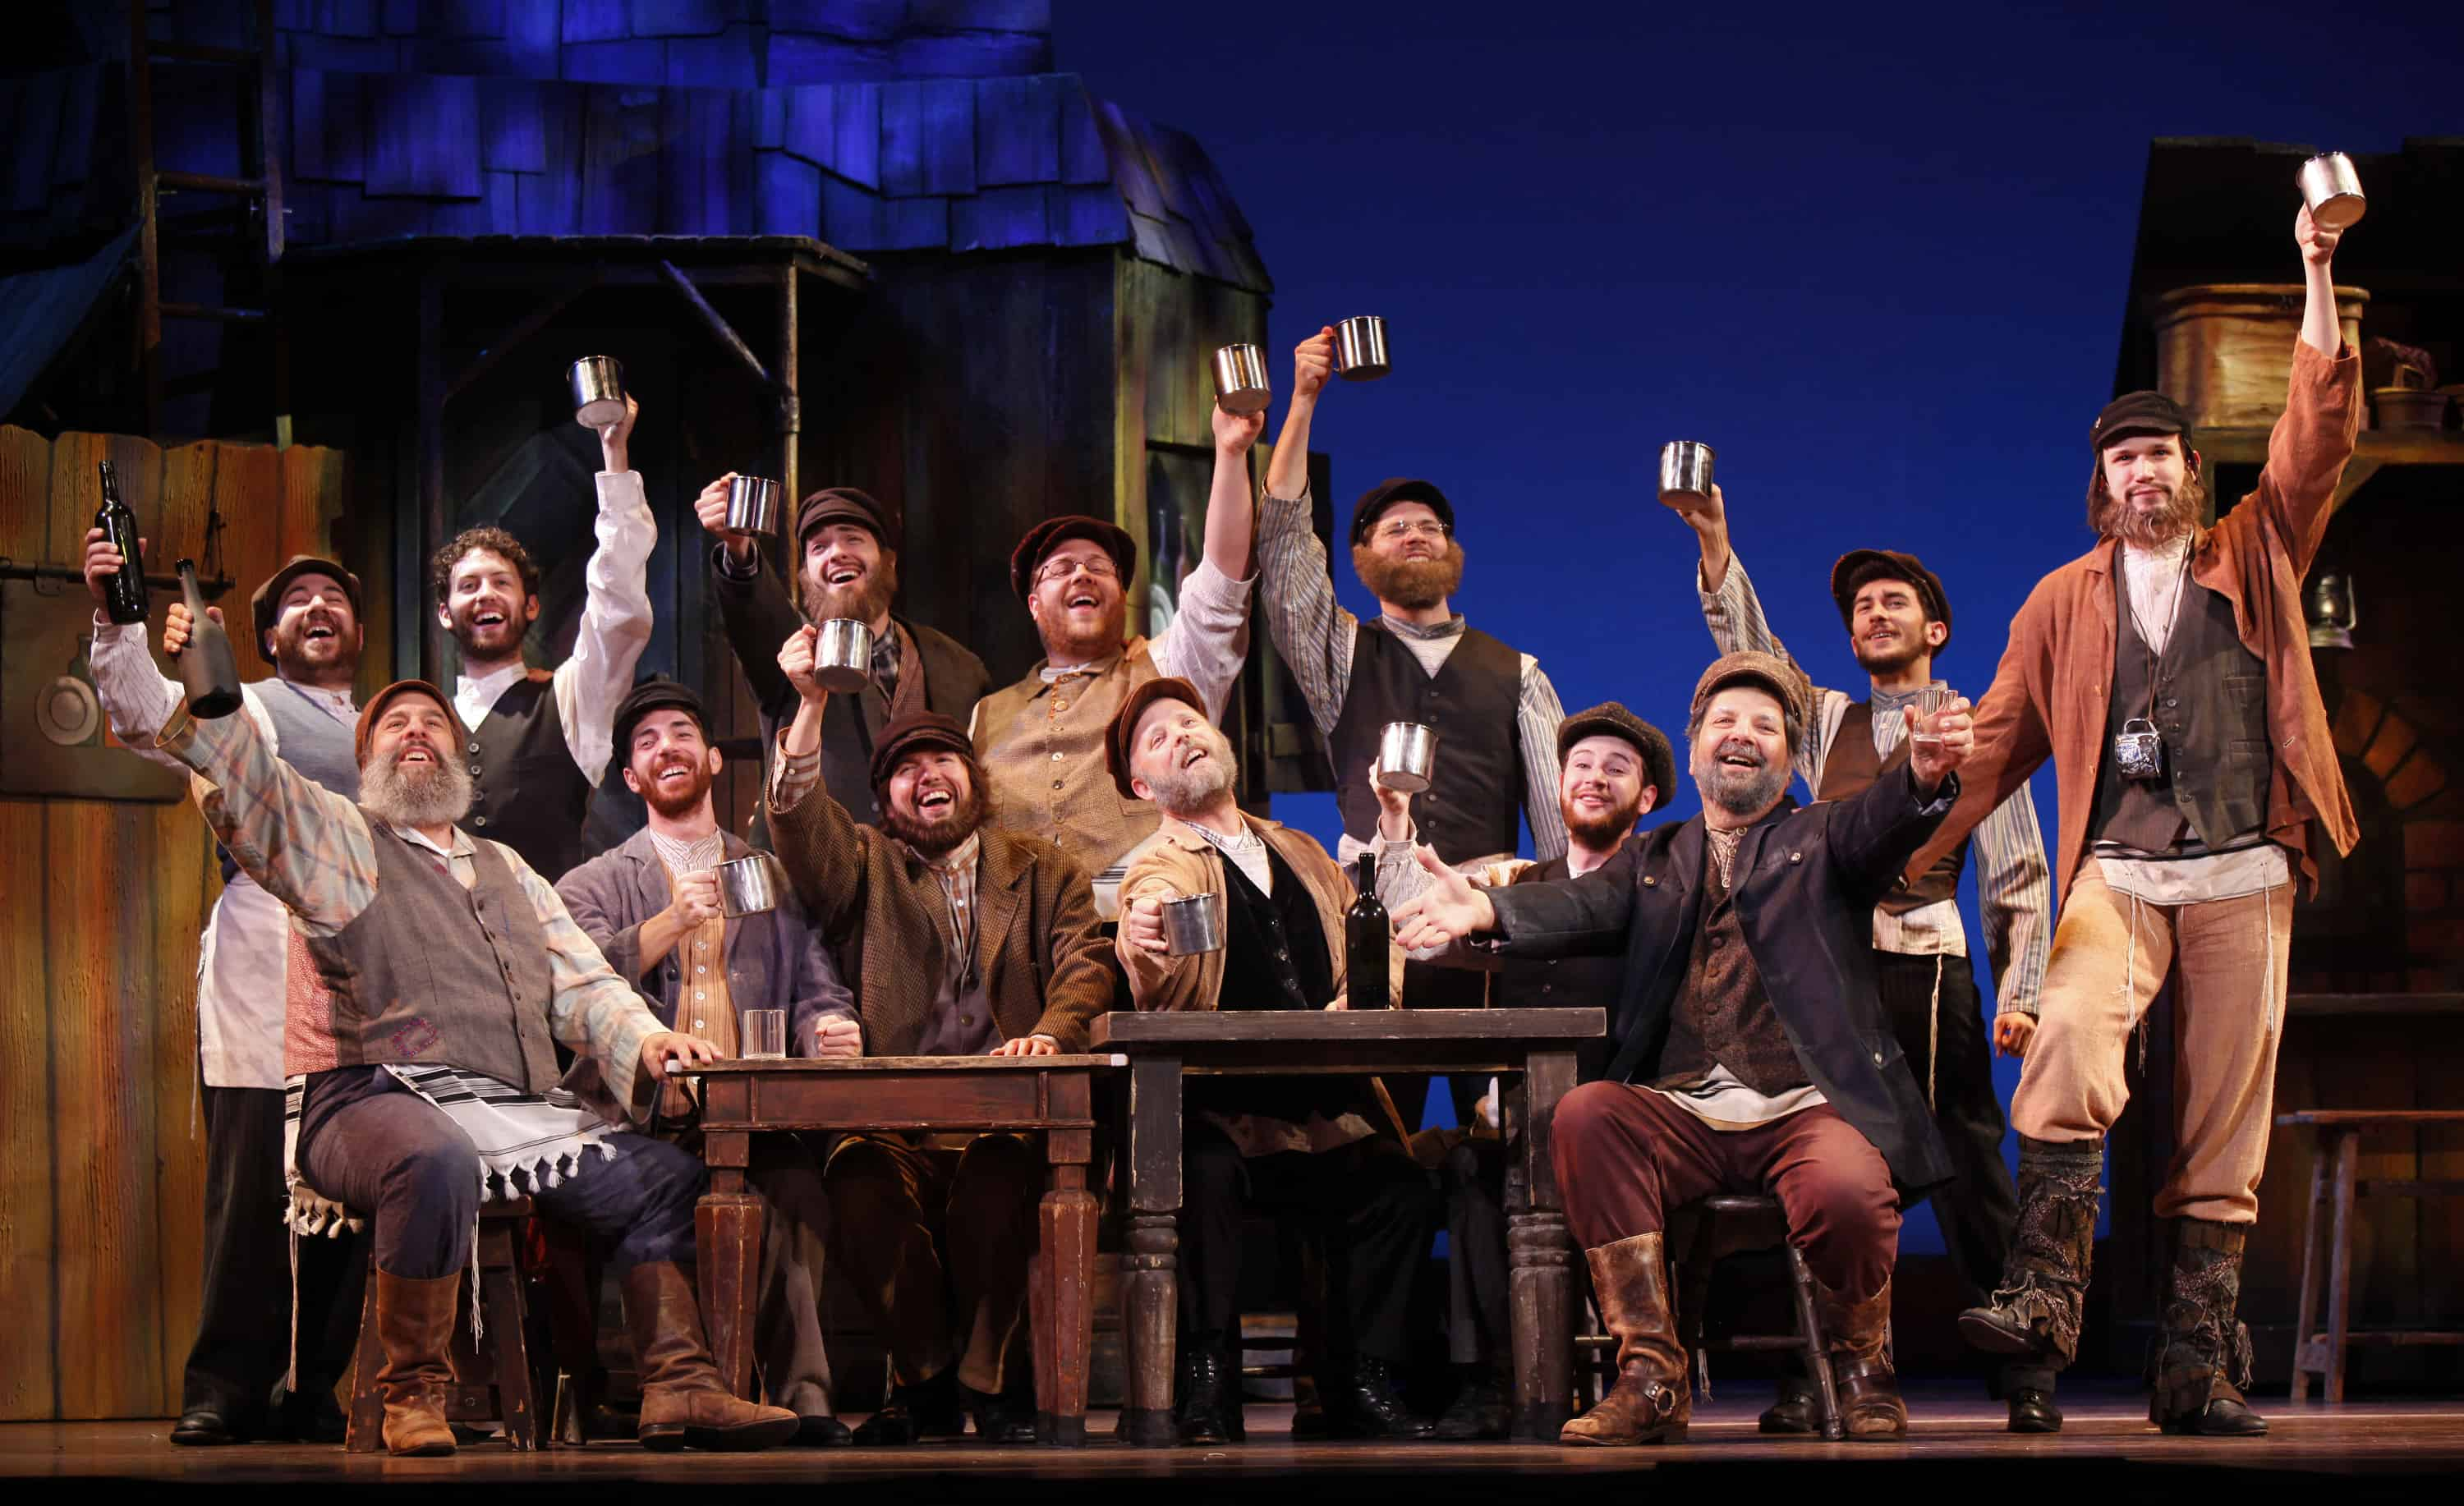 Tradition Fiddler On A Roof Next Up At Broadway San